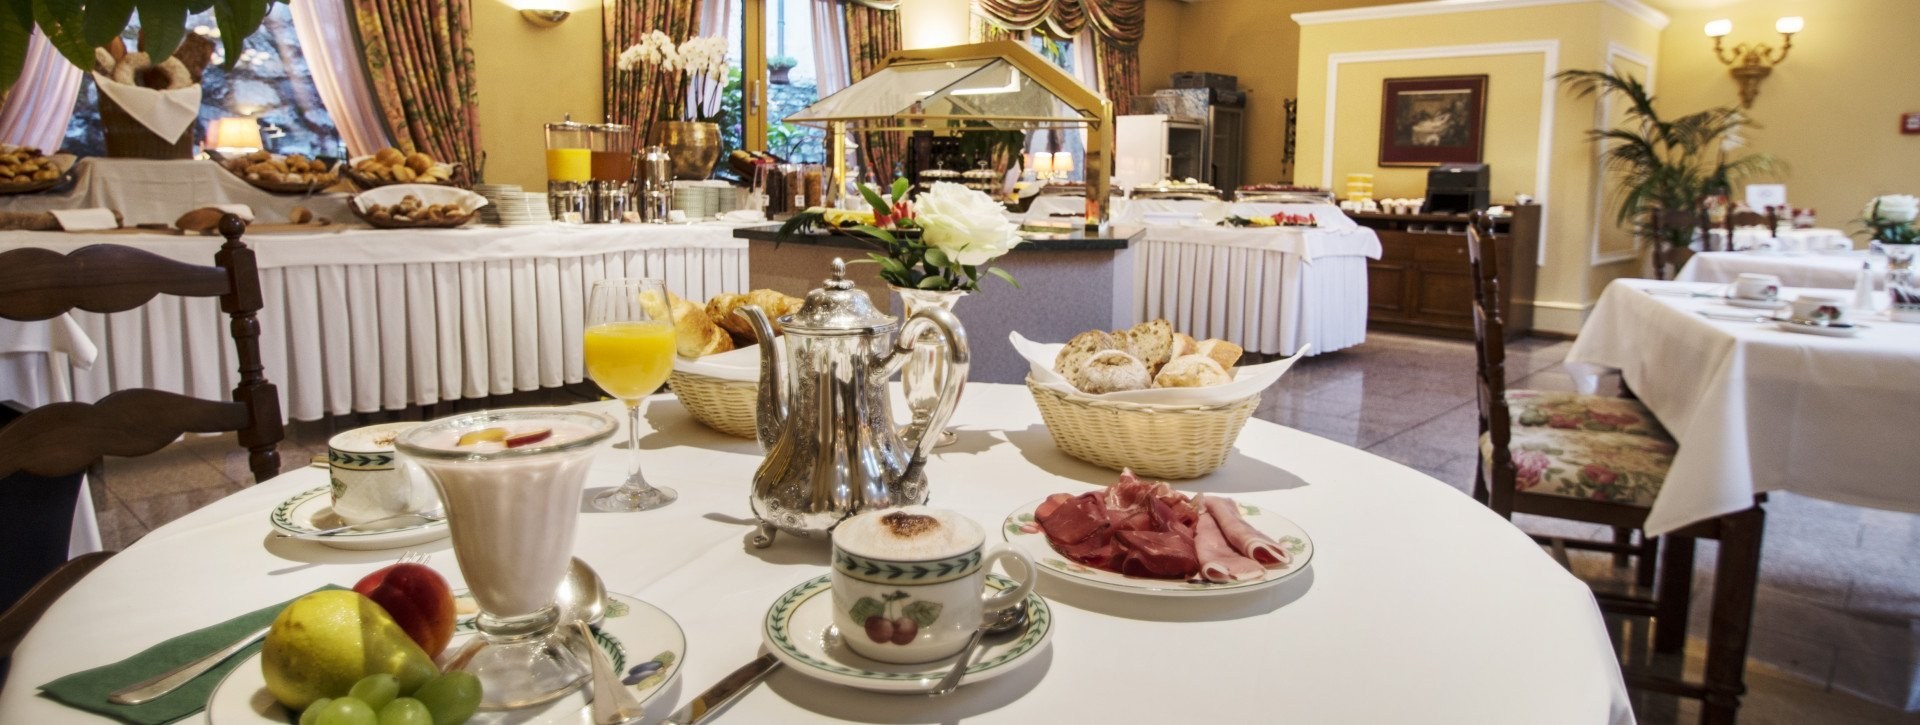 Breakfast buffet till 11:30 at the International au Lac Historic Lakeside Hotel